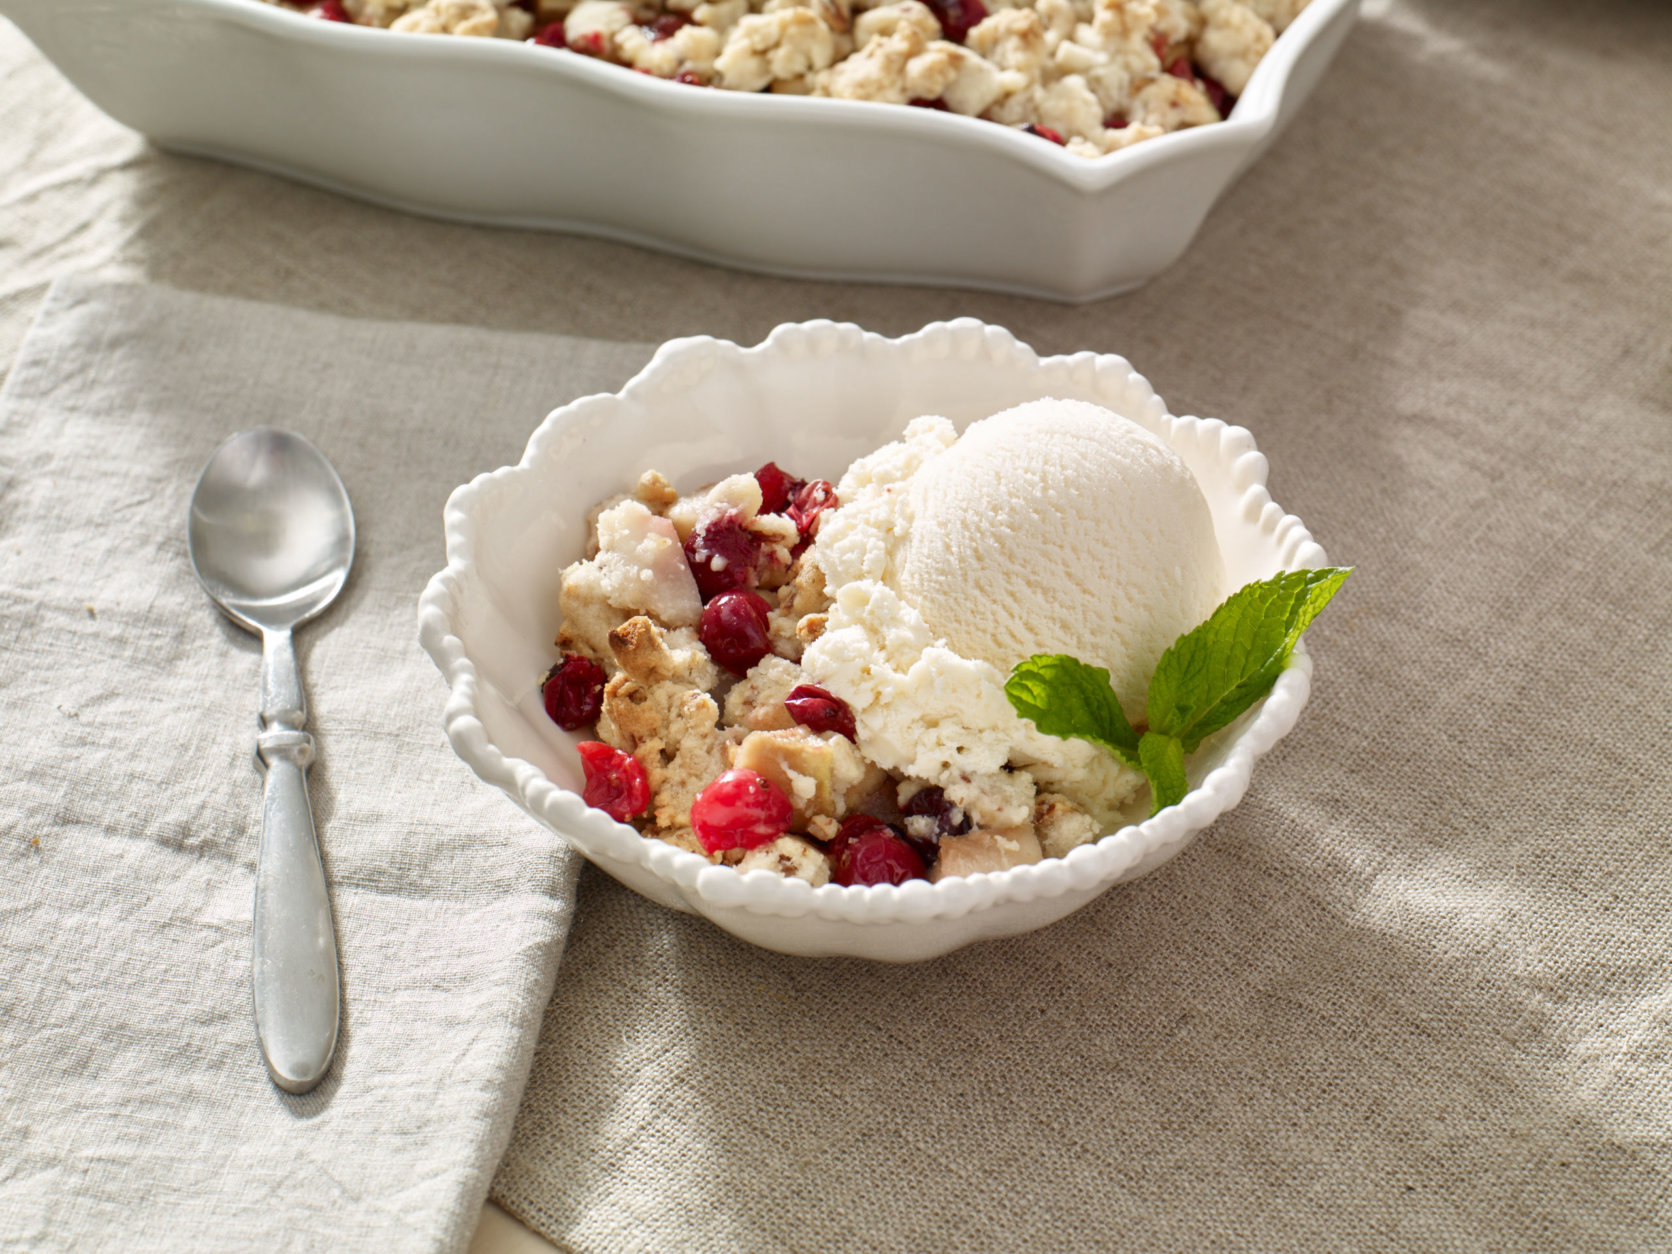 IMAGE DISTRIBUTED FOR OCEAN SPRAY - Try cranberries outside of just sauce with a Cranberry Almond Pear Crisp for Thanksgiving dessert. For the full recipe, visit http://www.oceanspray.com/FamilyAffair/. (Ocean Spray via AP Images)